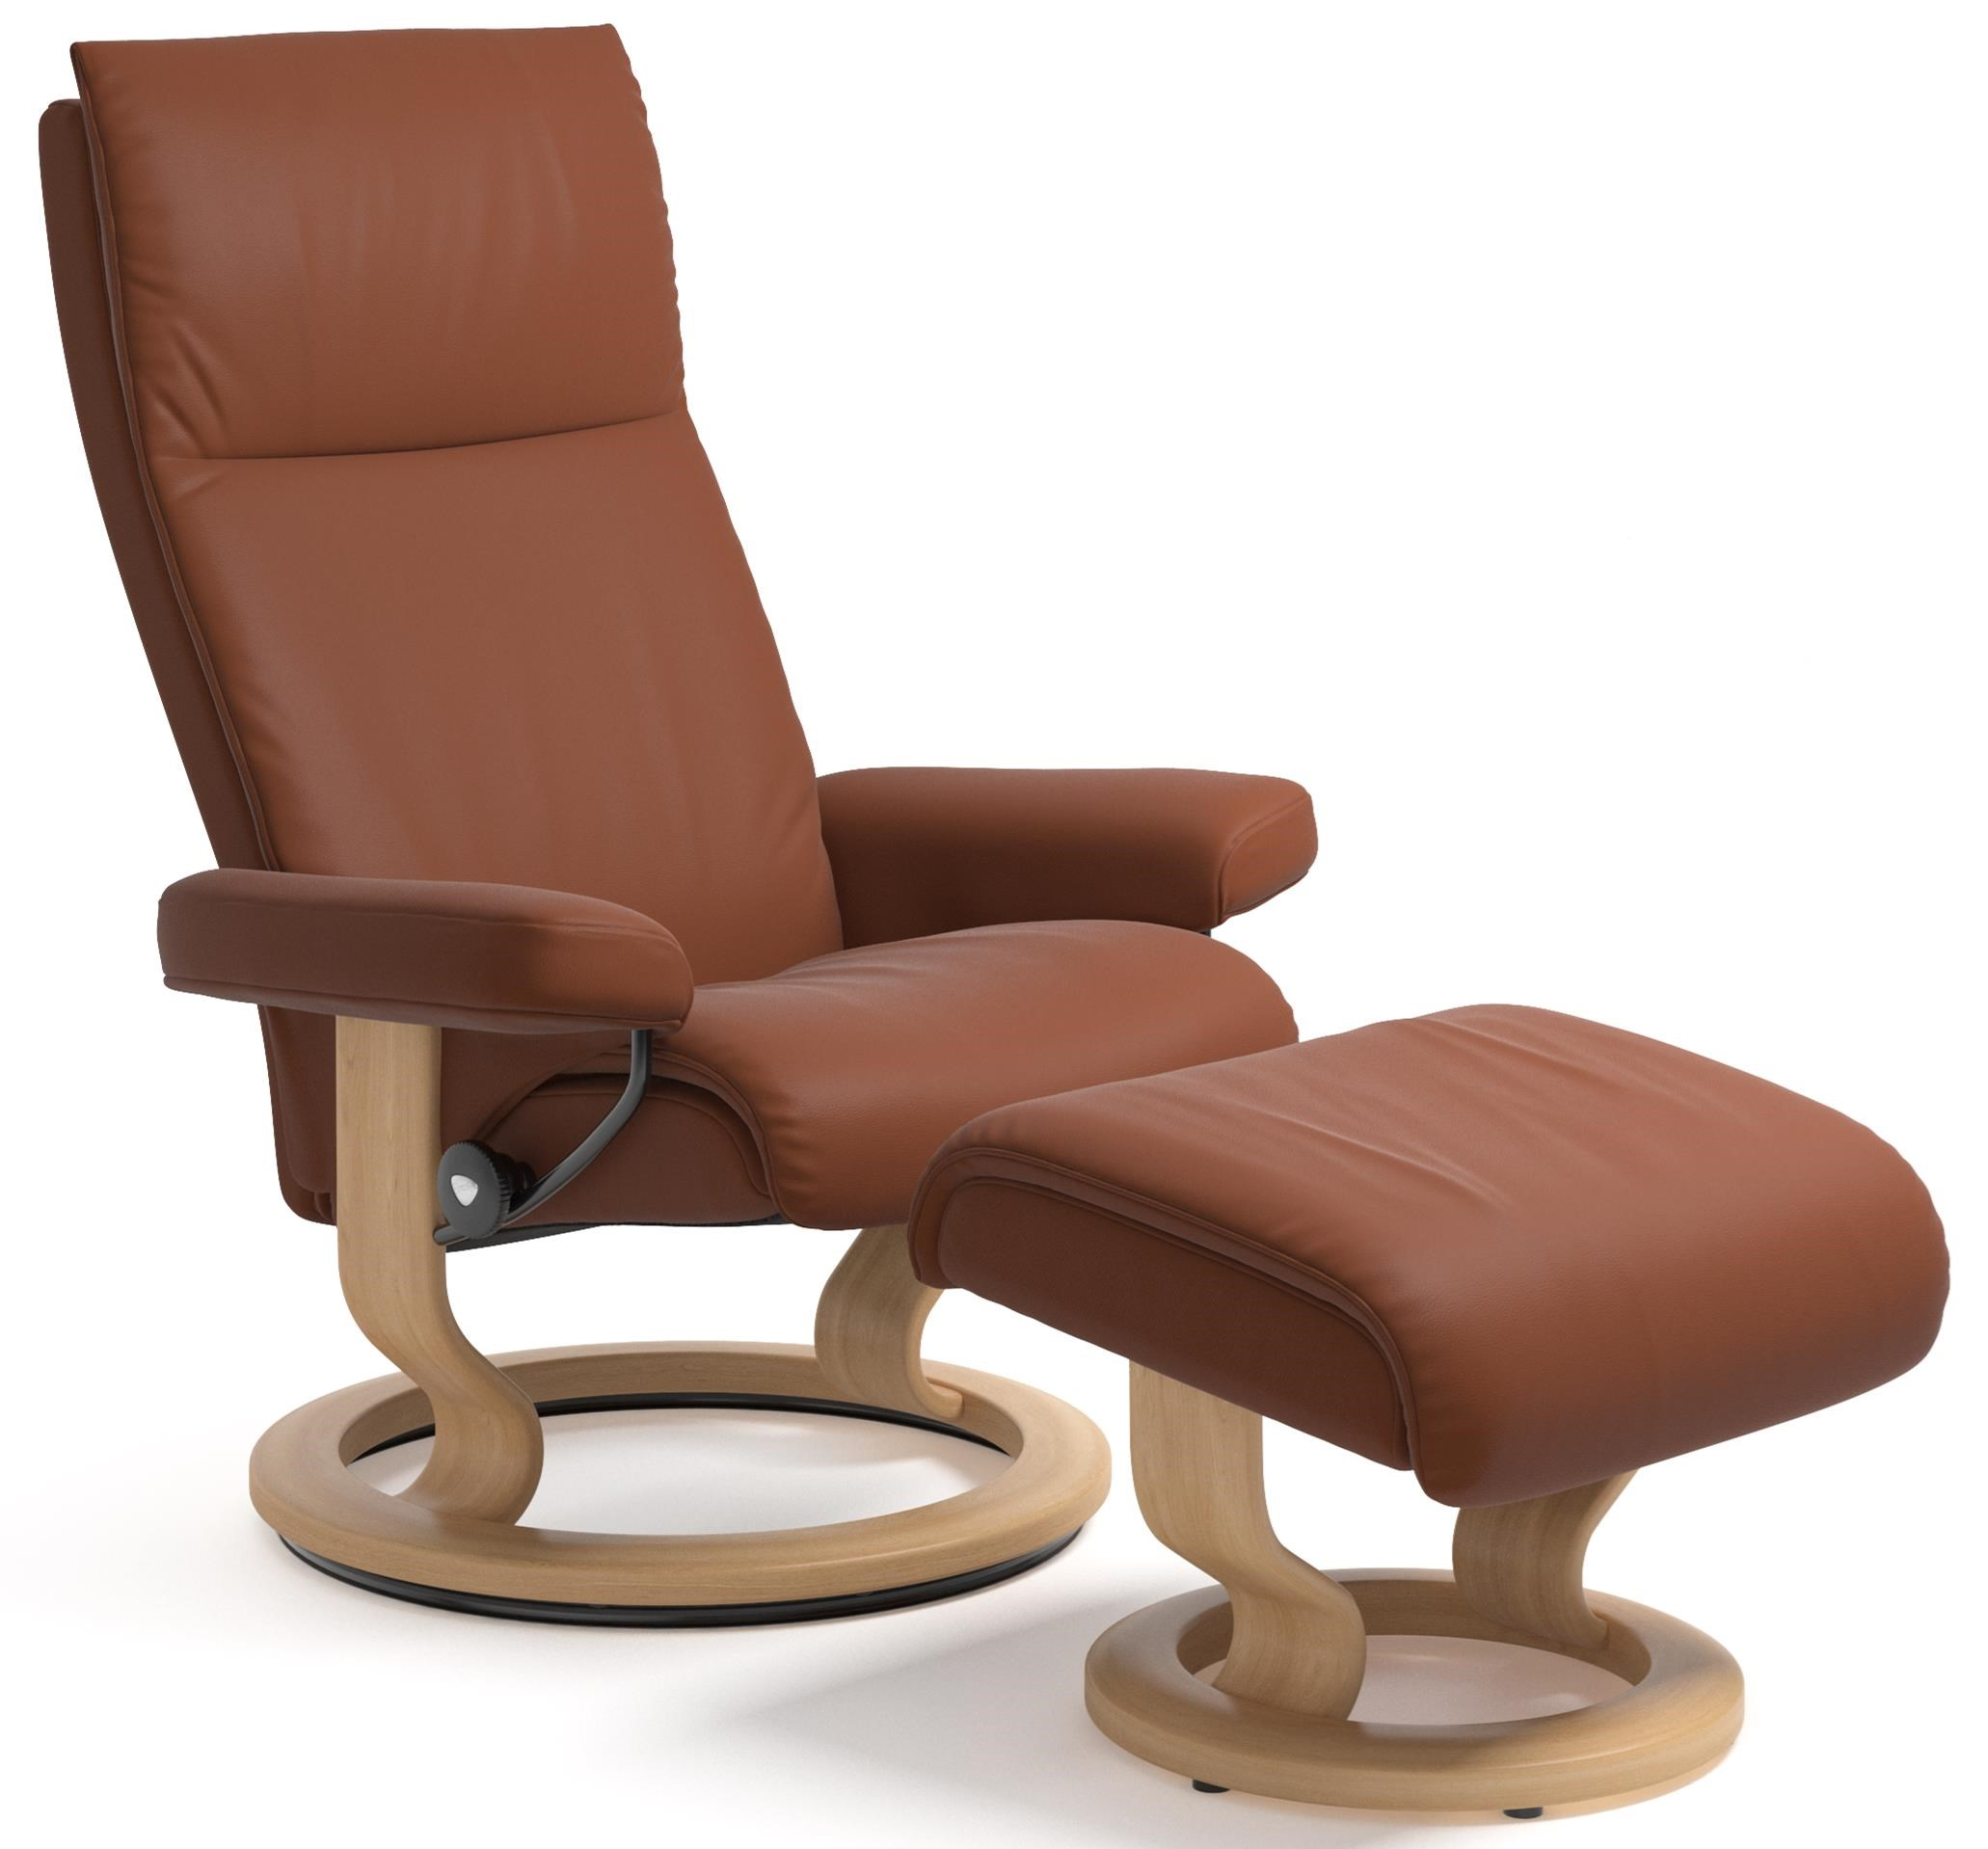 Stressless Aura Small Reclining Chair and Ottoman with